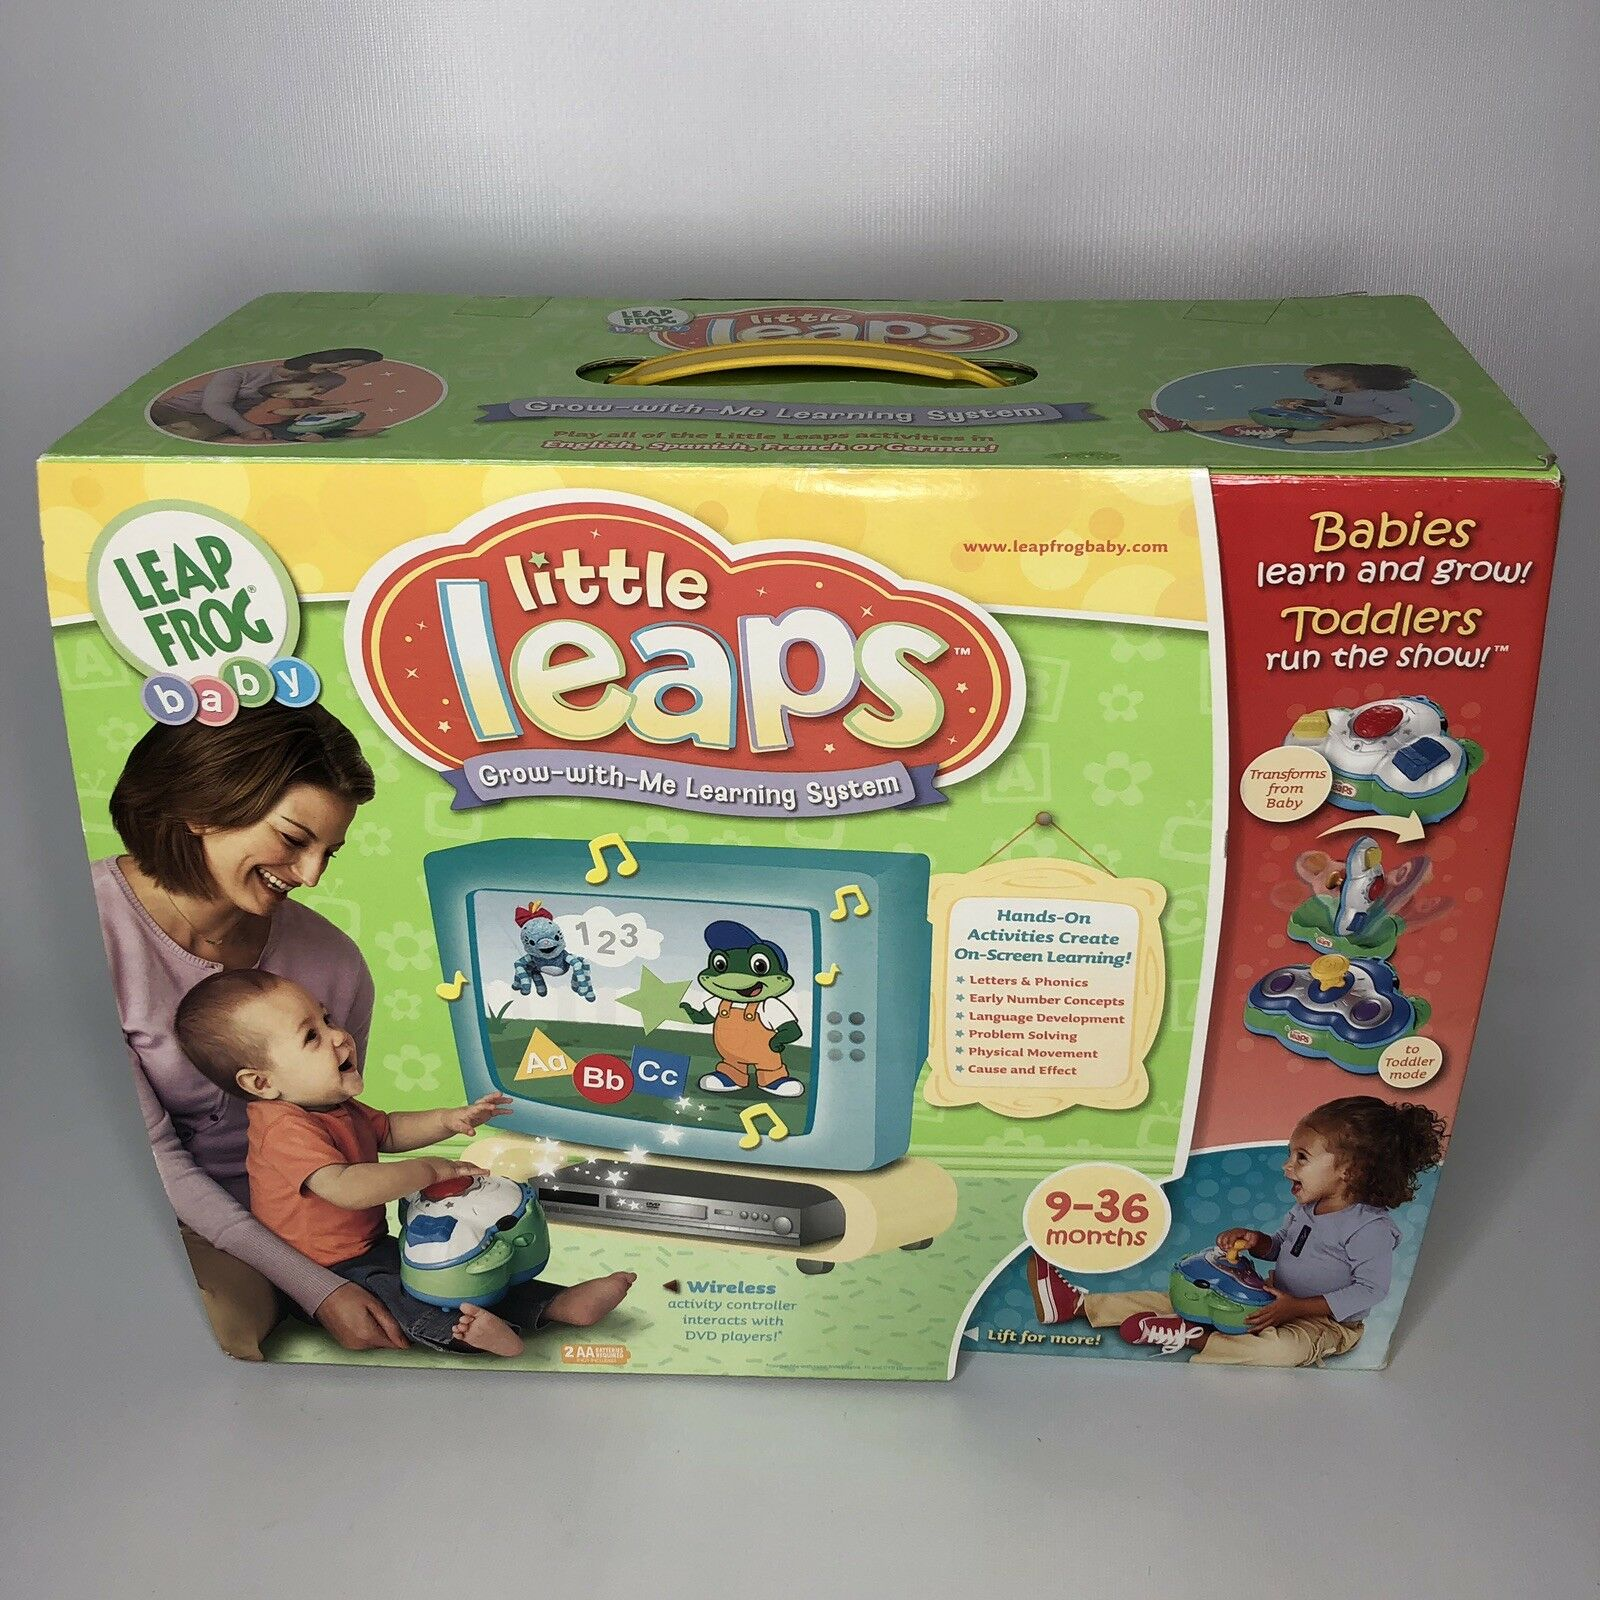 Sealed Little Touch LeapPad Learning System by LEAP FROG Baby 6-36 Months New